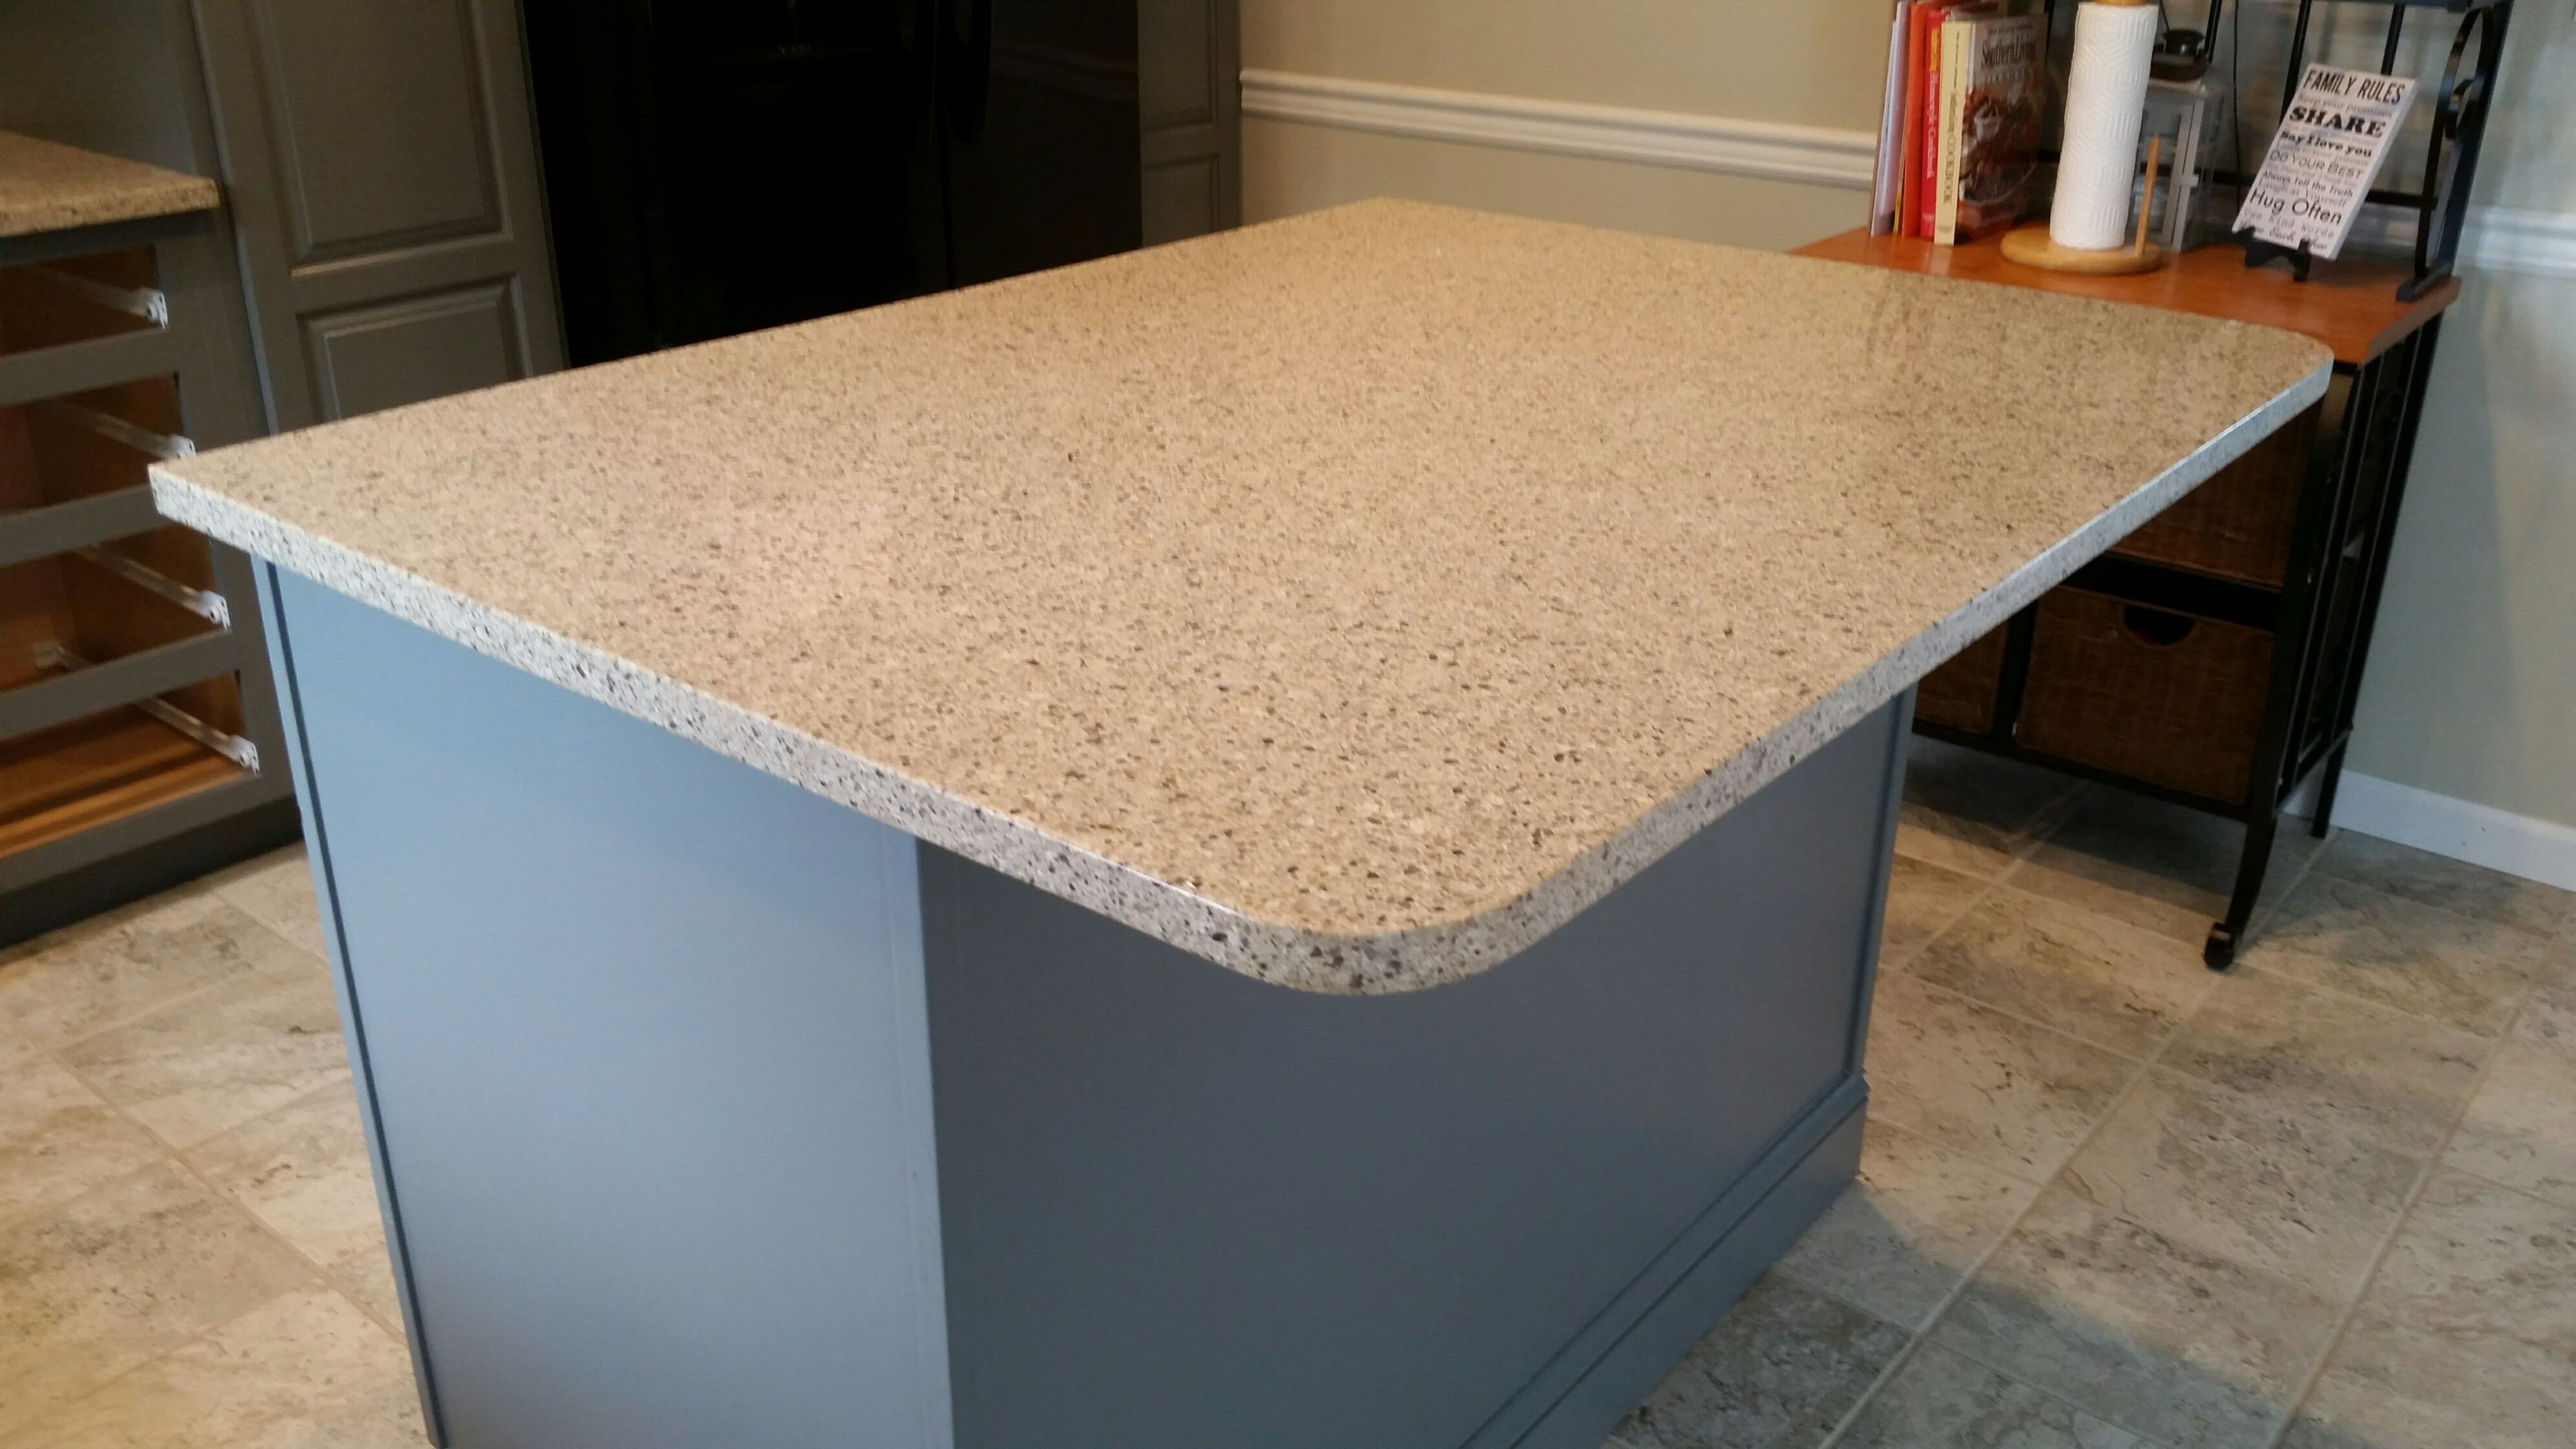 Silver Lake Lg Viatera Quartz Kitchen Countertop Install For The Walker Family Knoxville 39 S